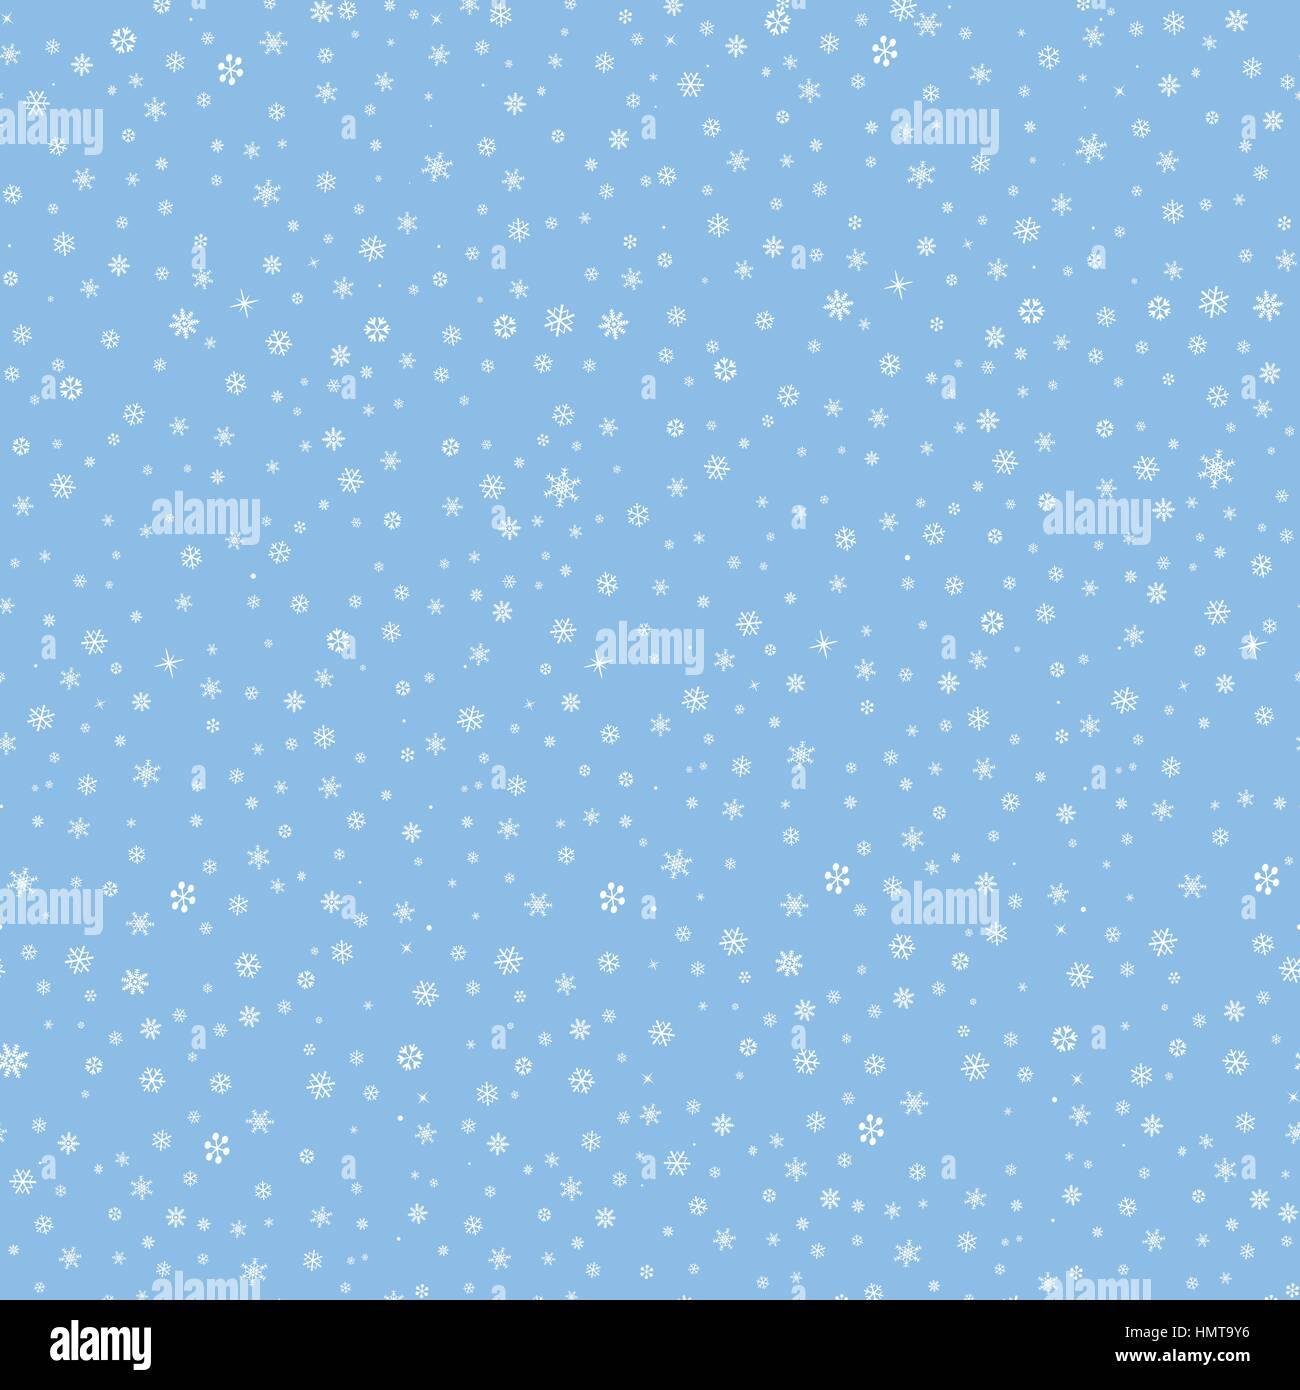 snow winter holiday background snowflakes texture snow